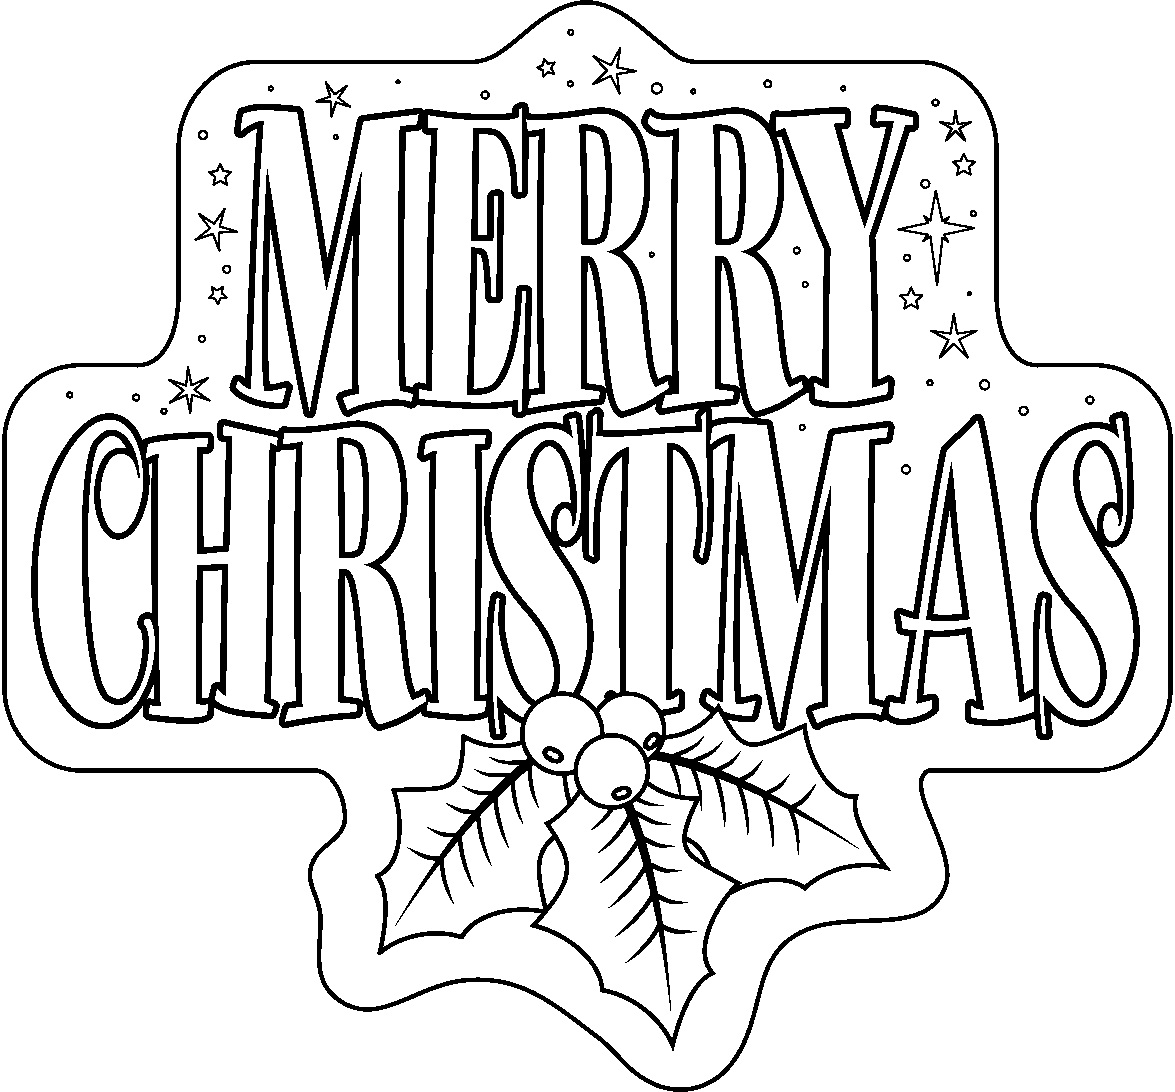 free holiday coloring pages free printable nativity story coloring pages free printable pages holiday free coloring